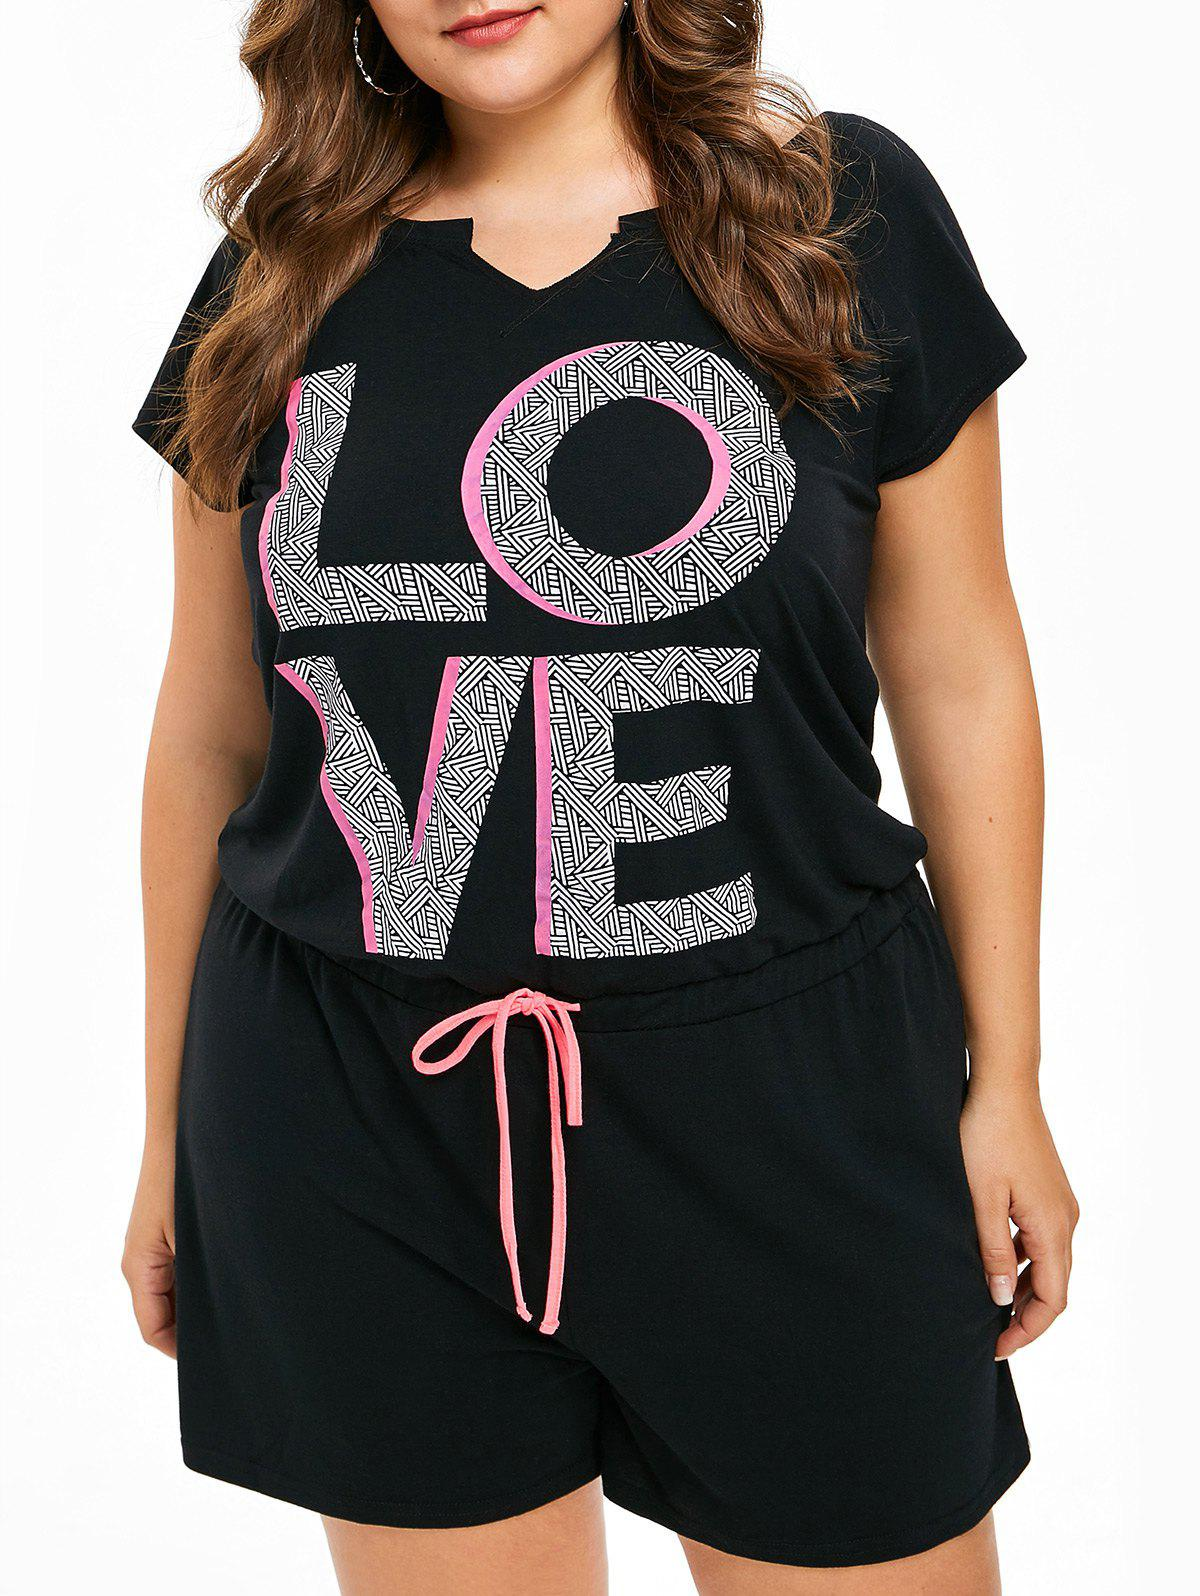 FRENCH BAZAAR Plus Size Love Print Cutout Back Waistline Romper - BLACK 1X